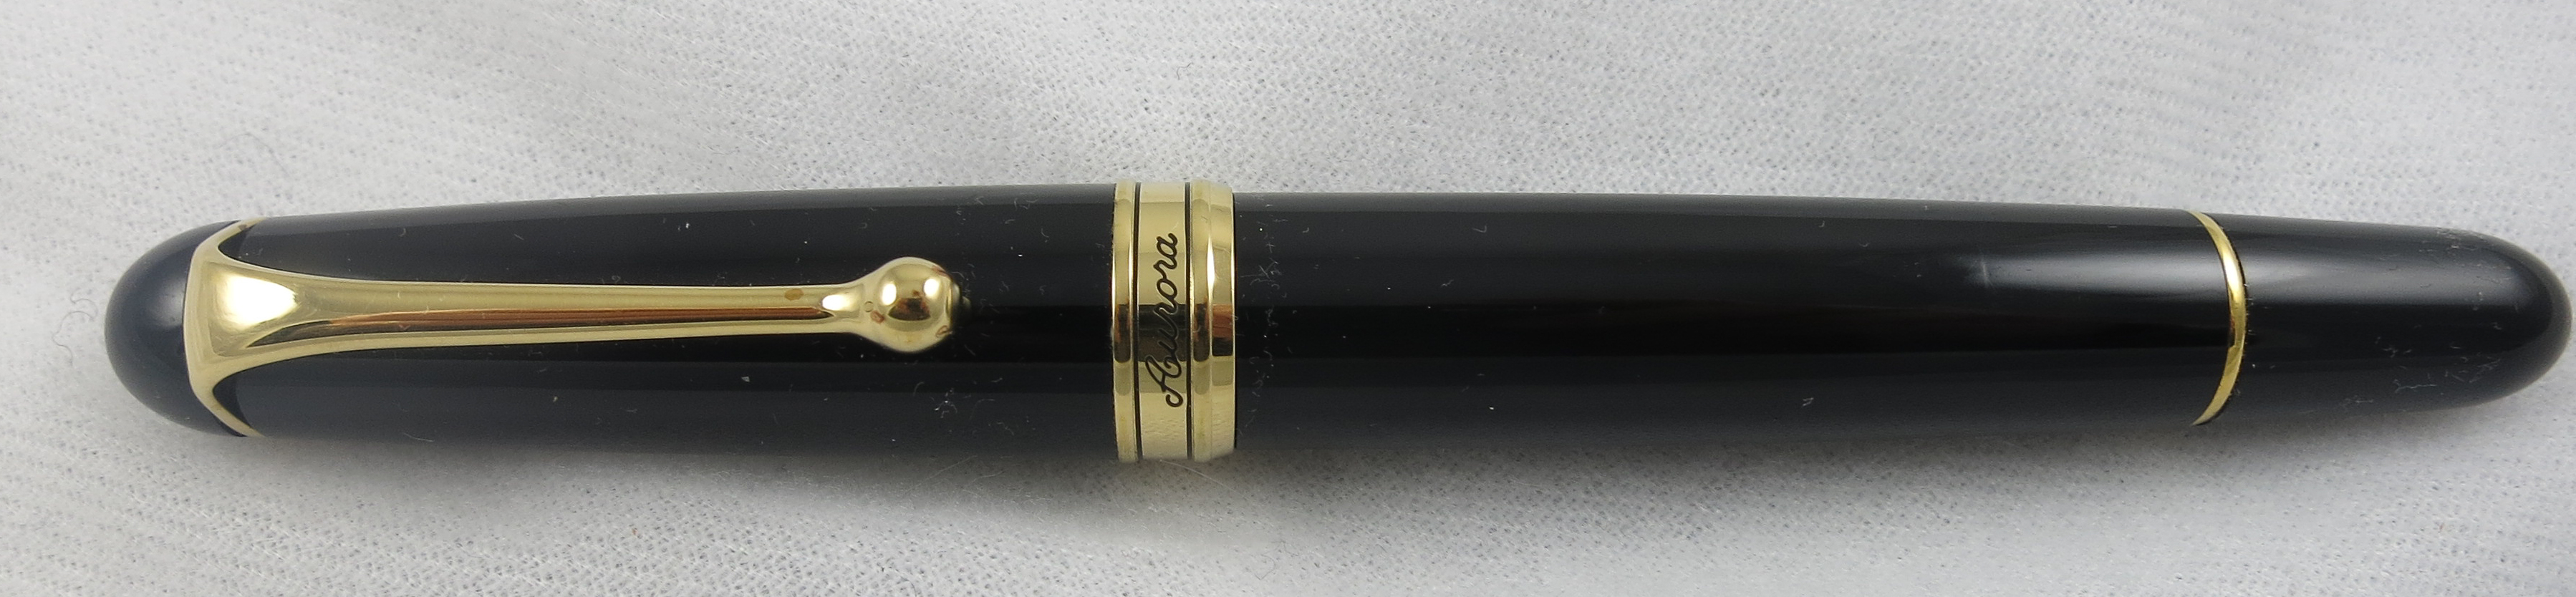 Pelikan M400 White and Tortoise (Pen 2241)